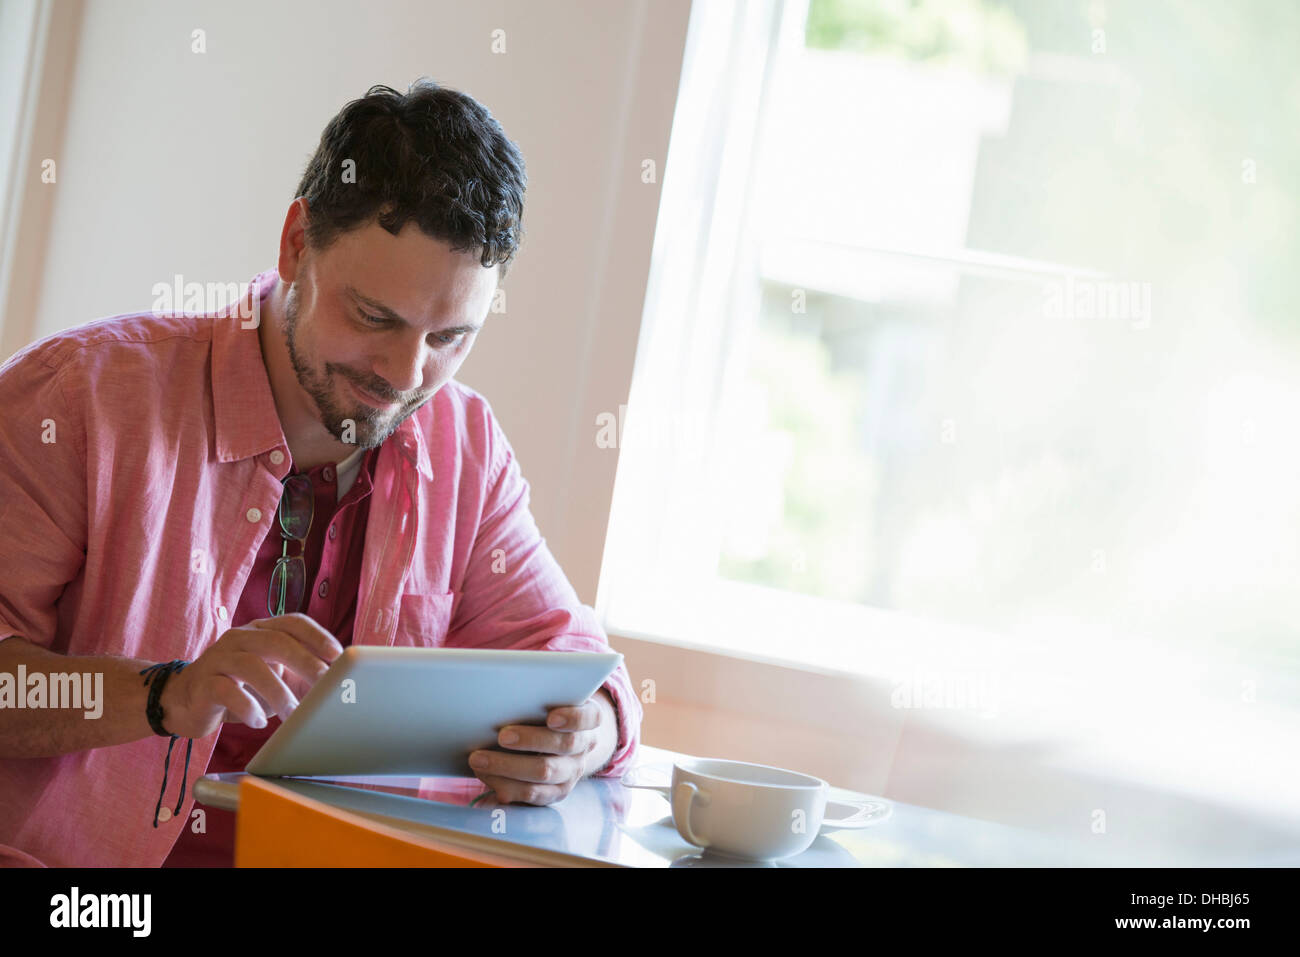 A man sitting at a cafe table, using a digital tablet. - Stock Image